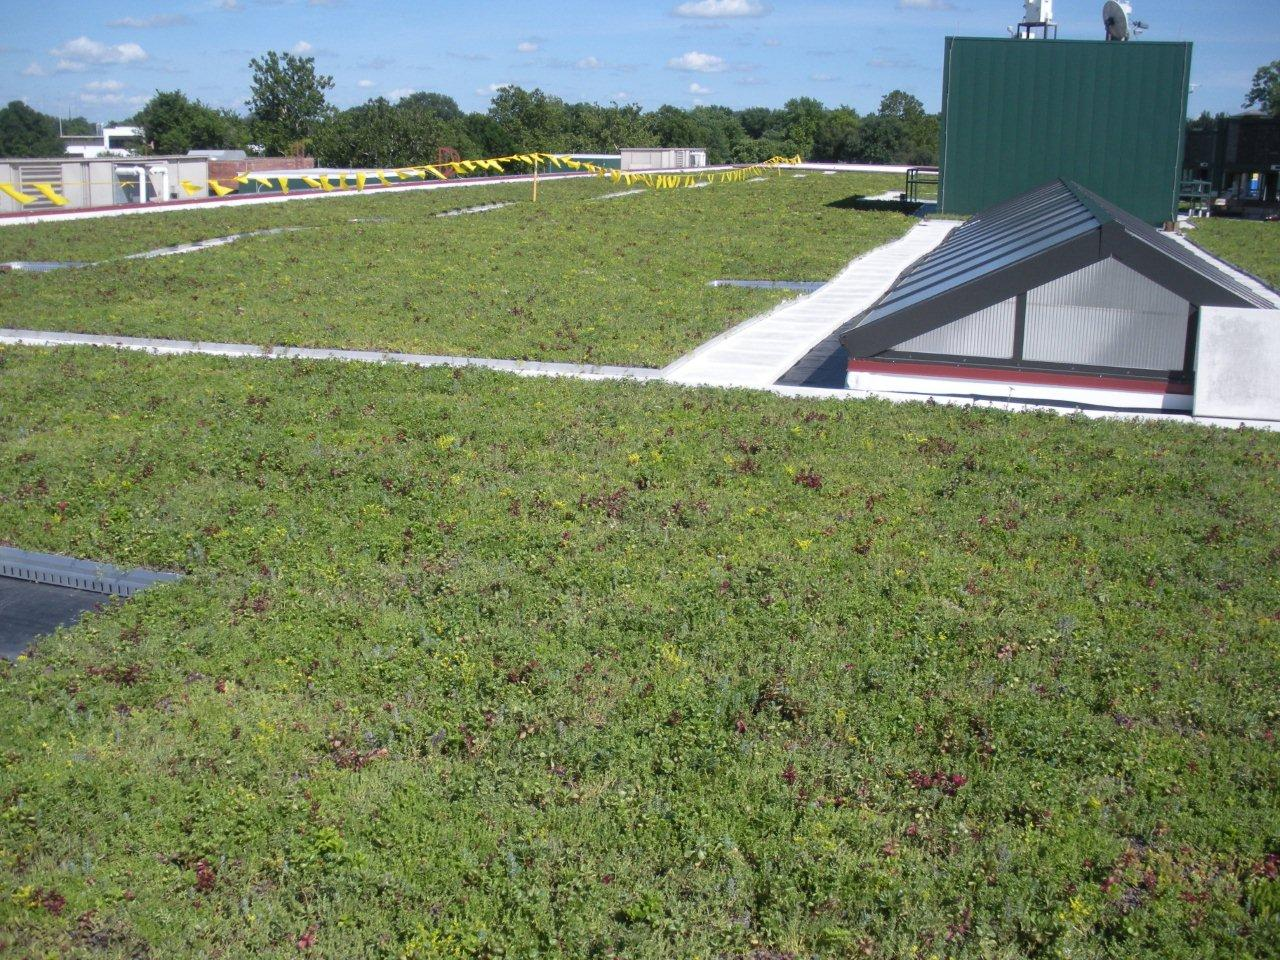 Illinois Department of Agriculture Vegetated Roof by LiveRoof